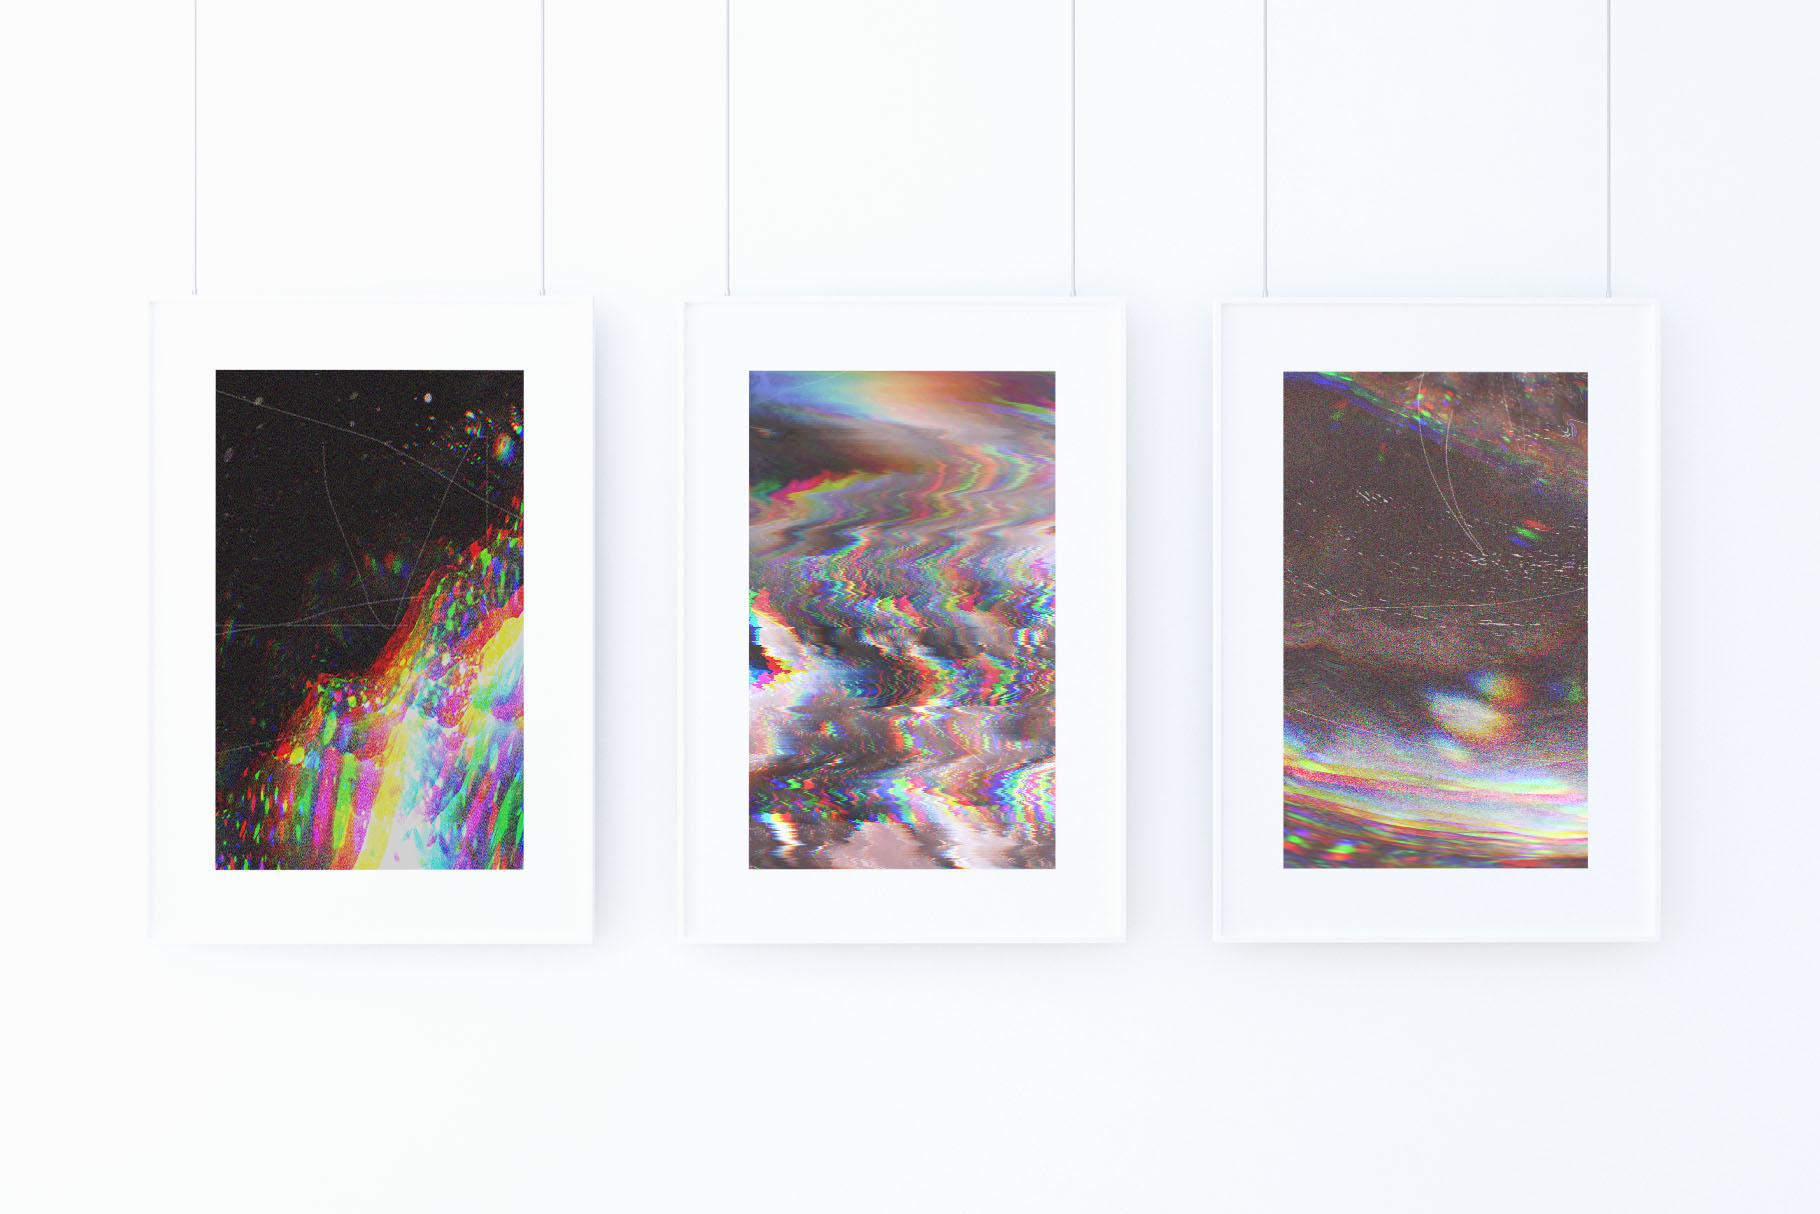 Illusion - Glitch Effect Backgrounds example image 4